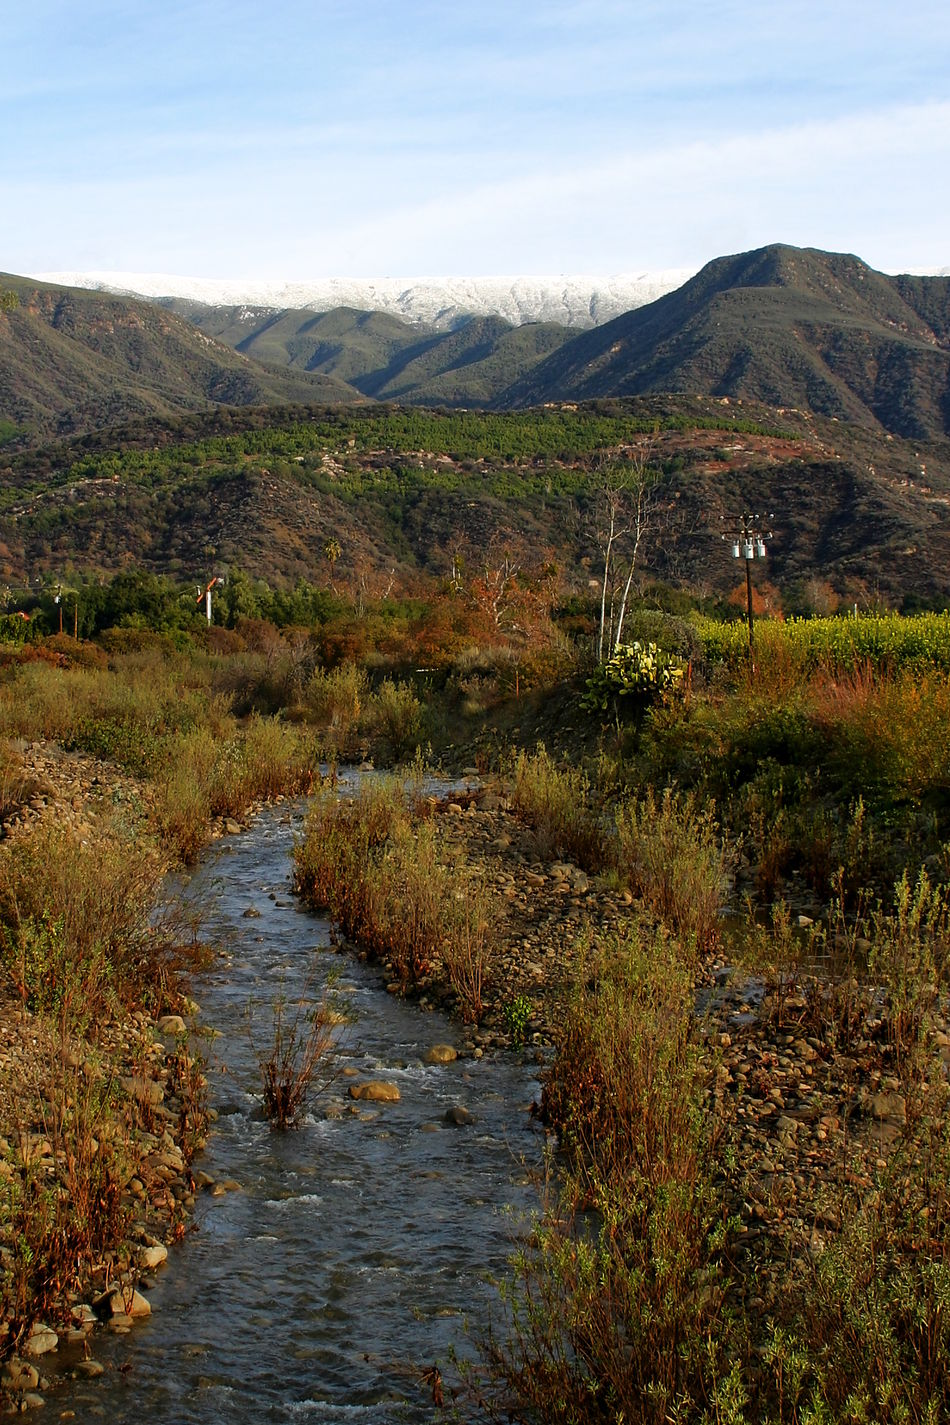 Ojai Valley Landscape of the Ojai valley wit a creek. California Cold Creativity Creek Grass Green Ice Landscape Mmountain Mountains Nature Ojai Outdoors Rock Scenery Scenic Scenics Sky Snow Stream Tourism Tourist Travel Water Winter